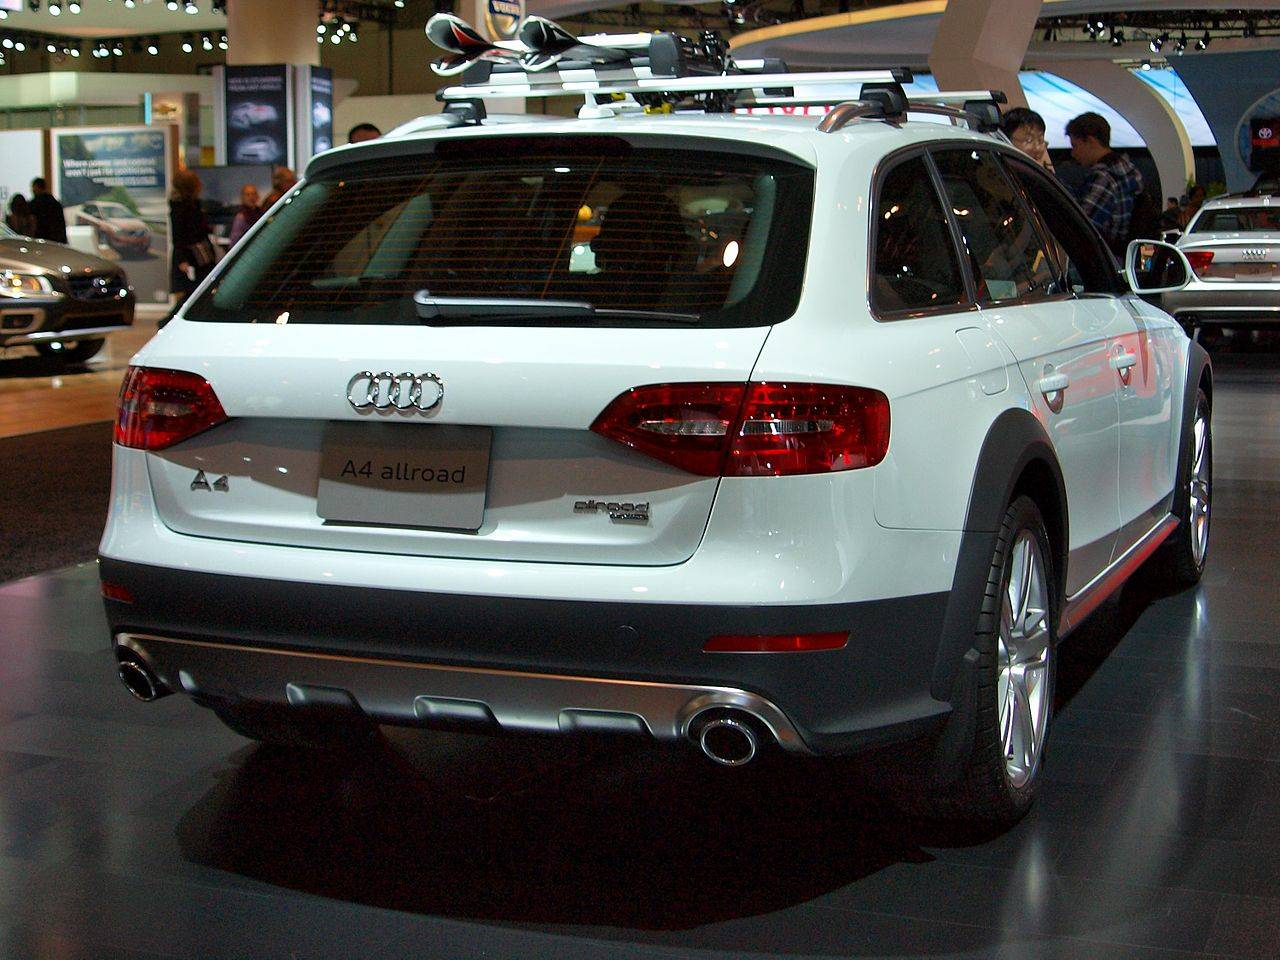 audi a4 allroad 2013 owners manual